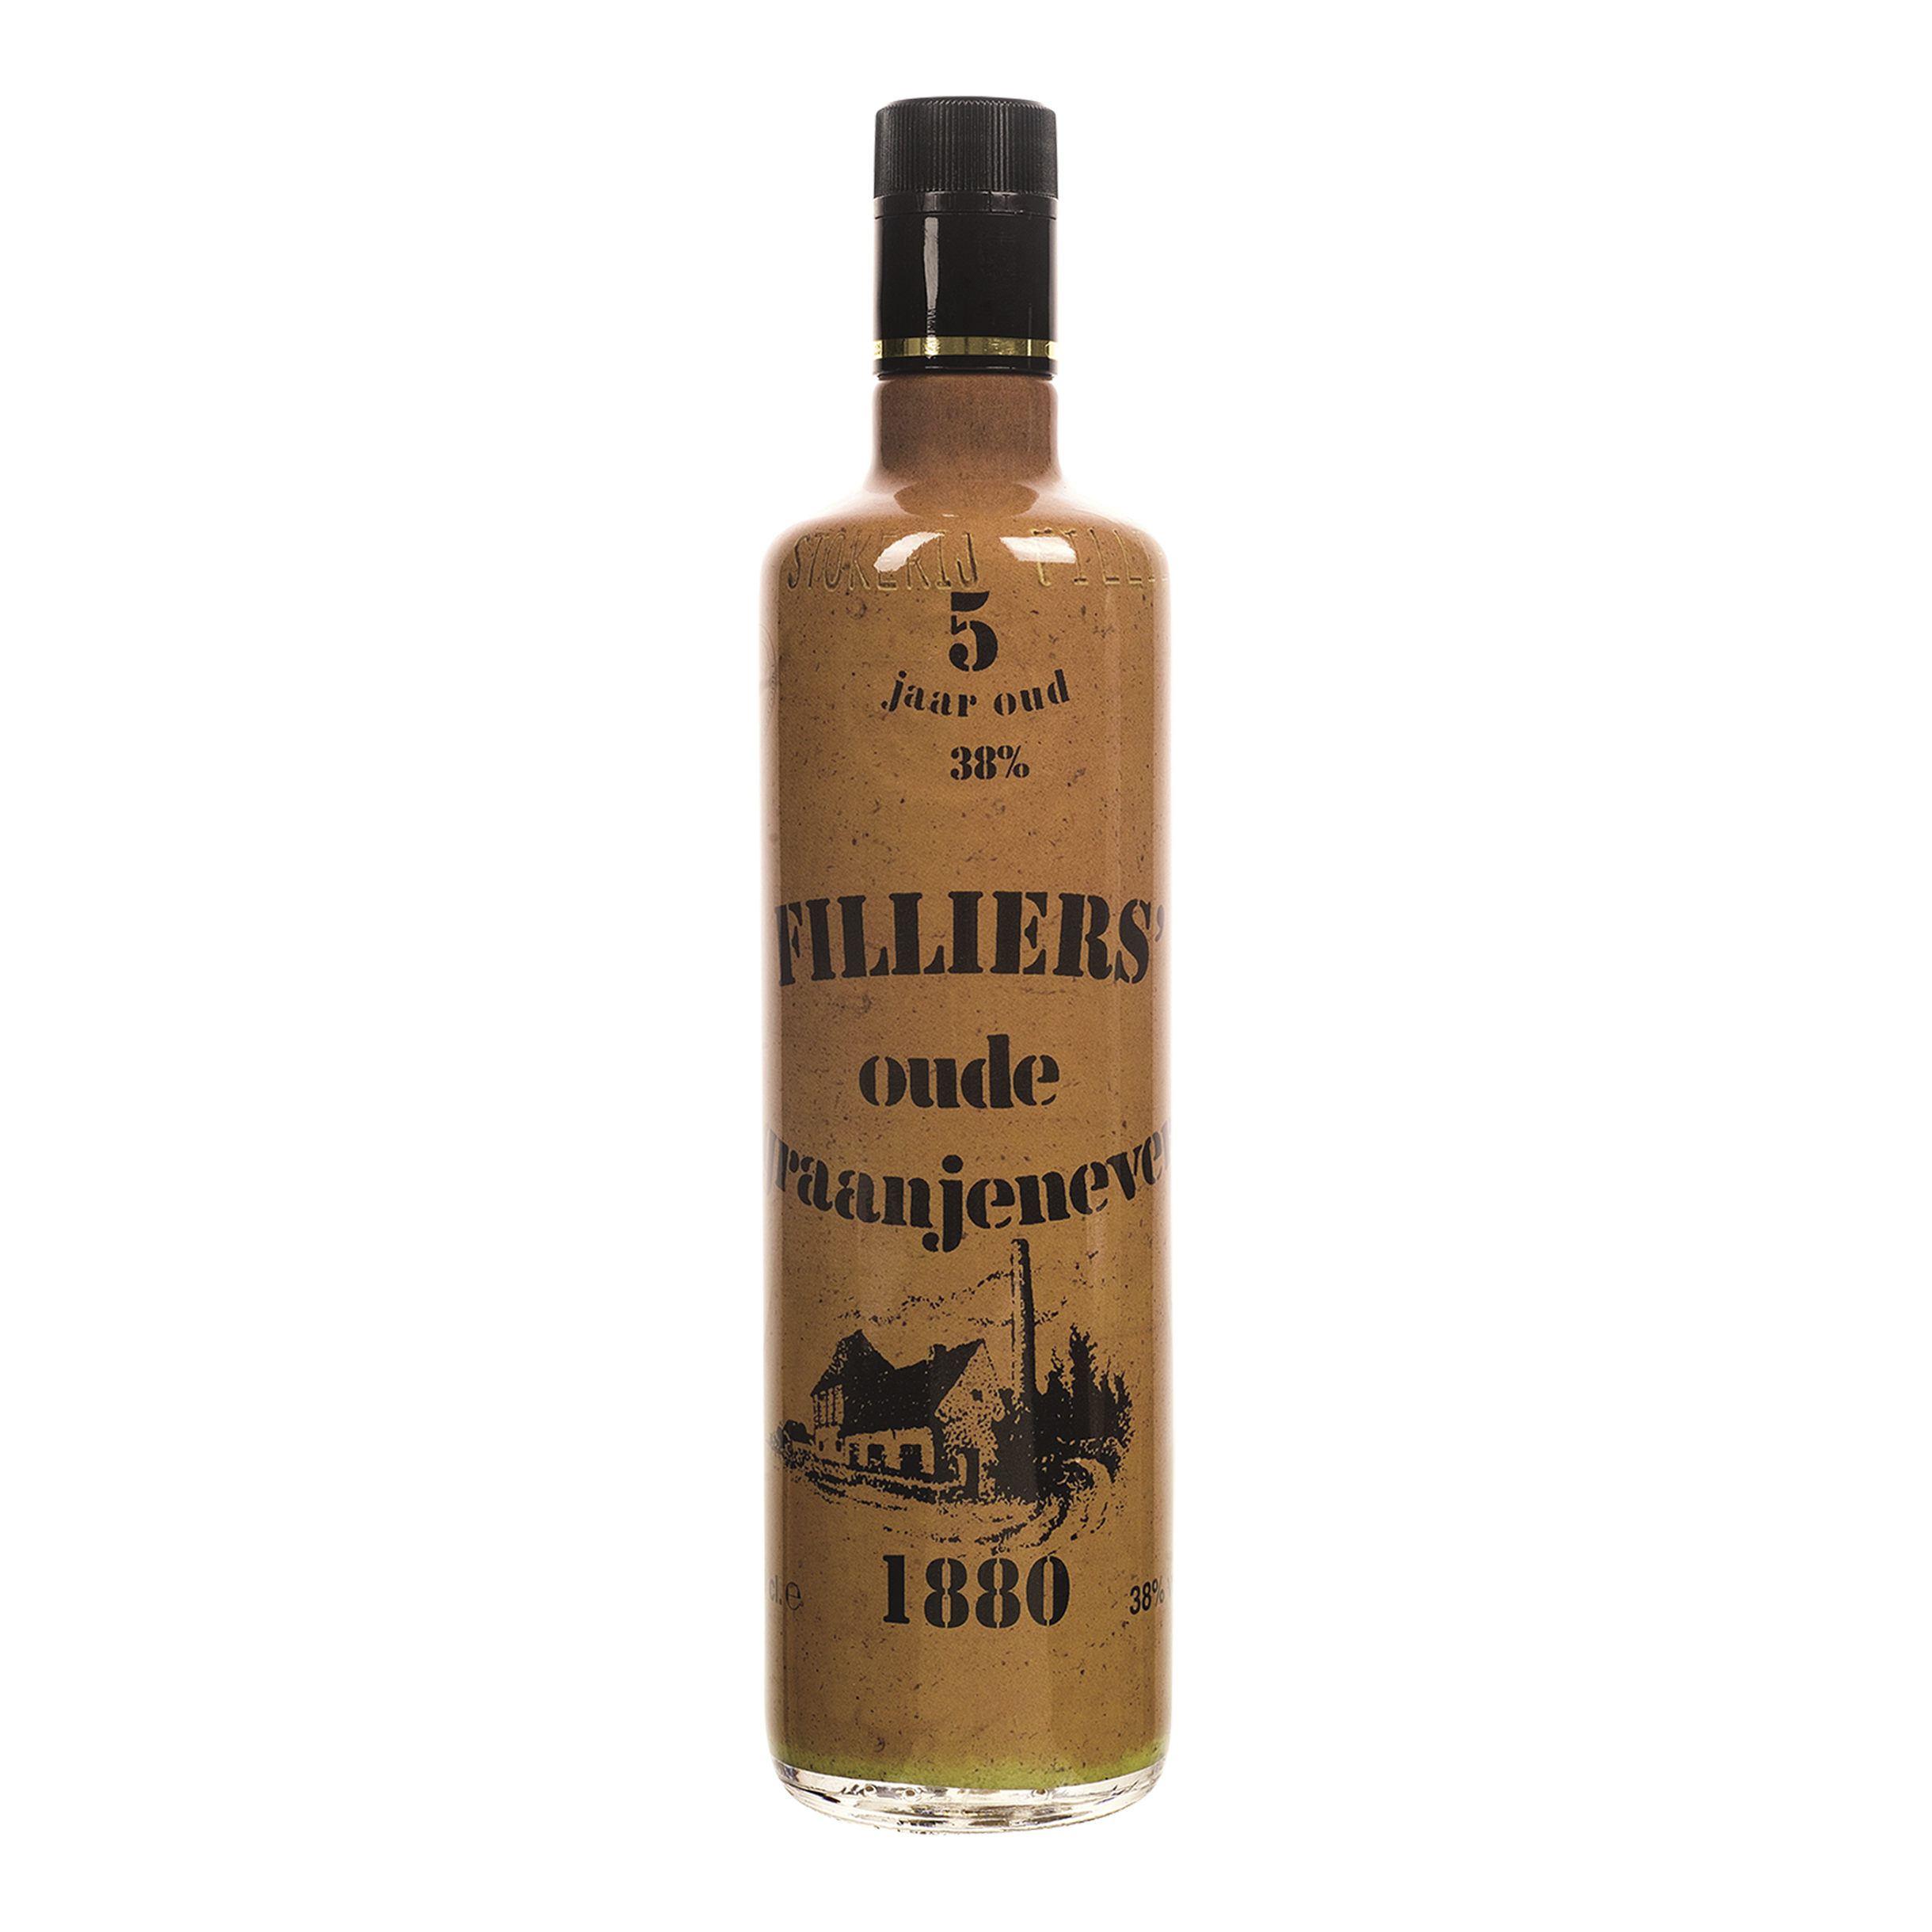 NV-Filliers Oude Jenever 5 Years